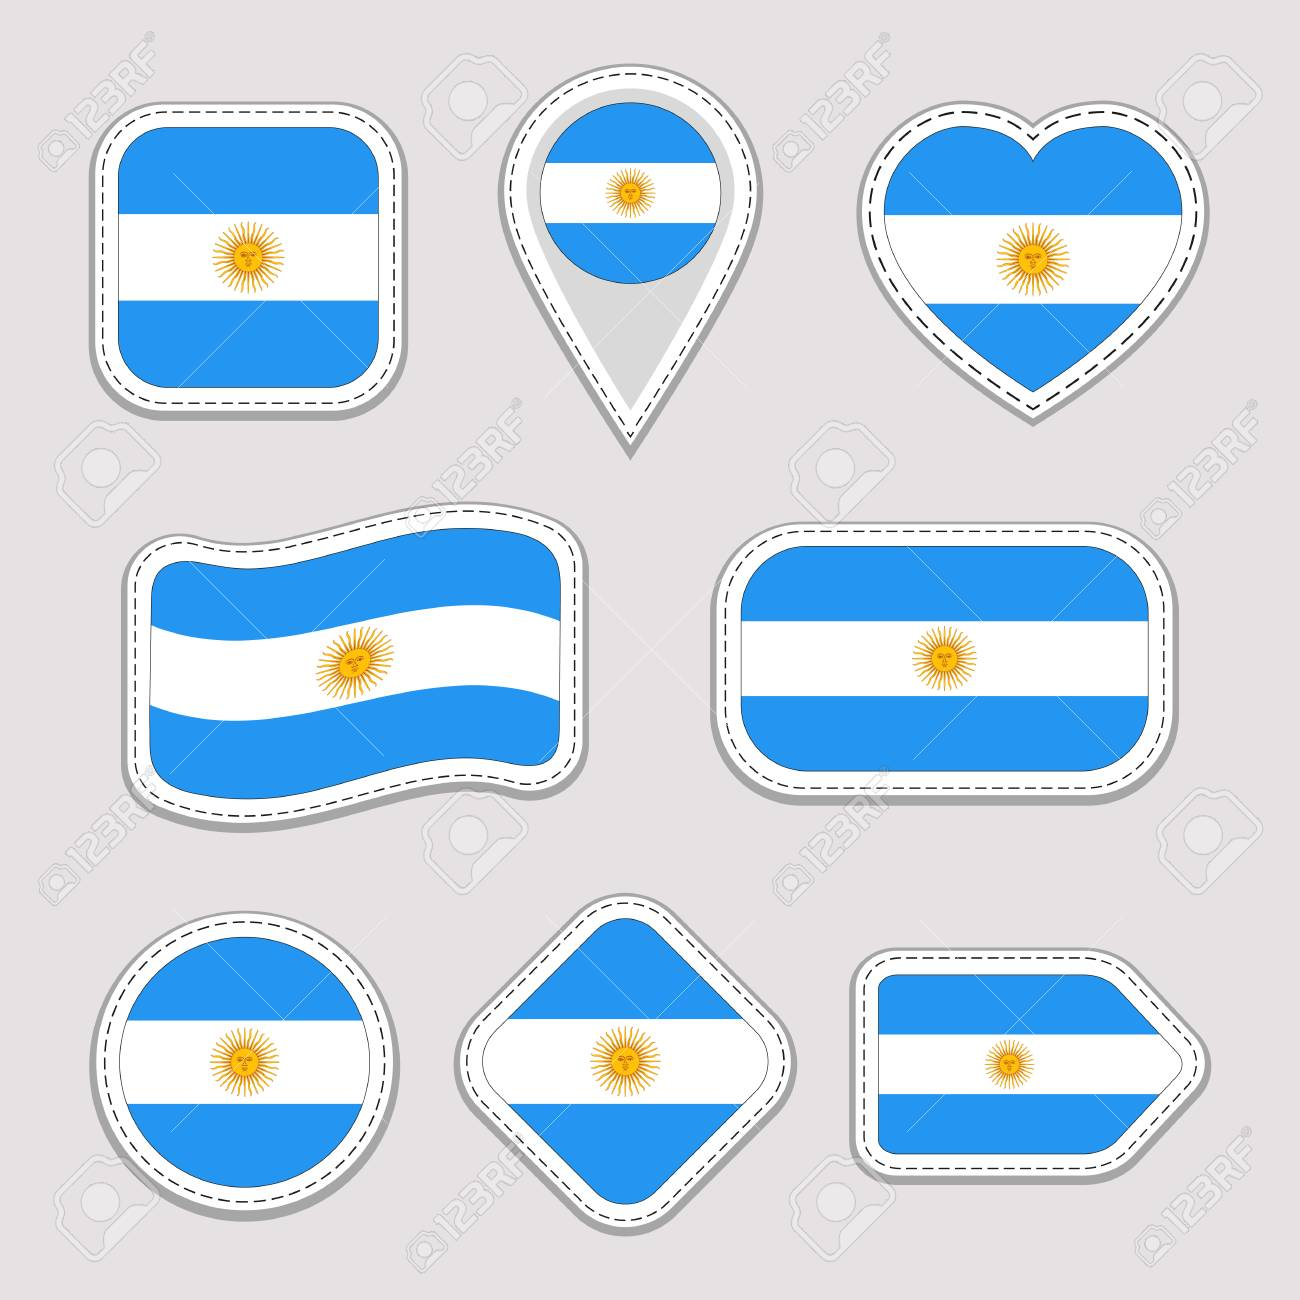 Argentina flag vector set argentinian national symbols badges flags stickers collection isolated geometric